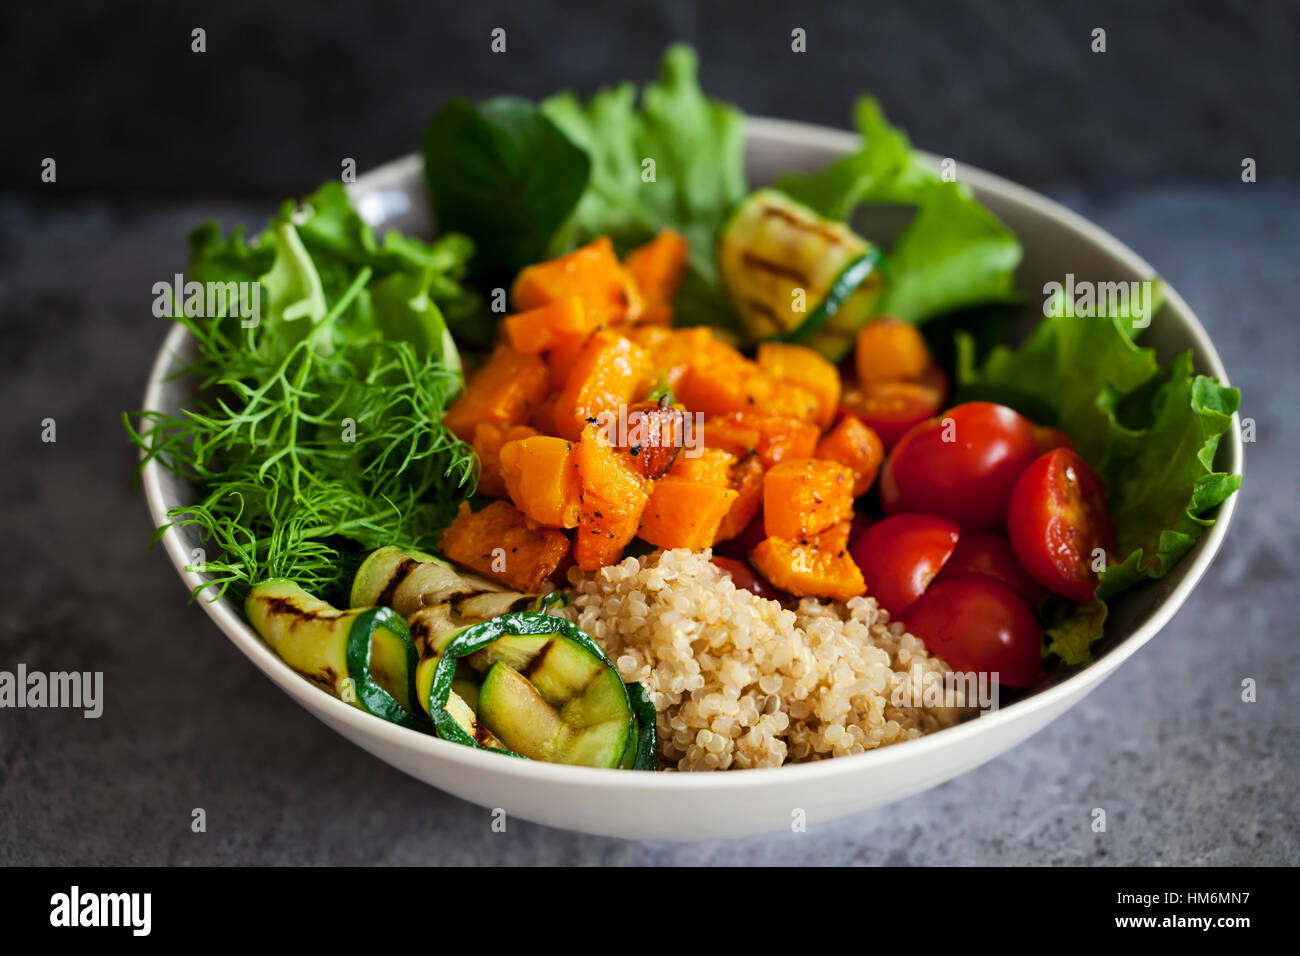 Buddha bowl with vegetables and quinoa - Stock Image